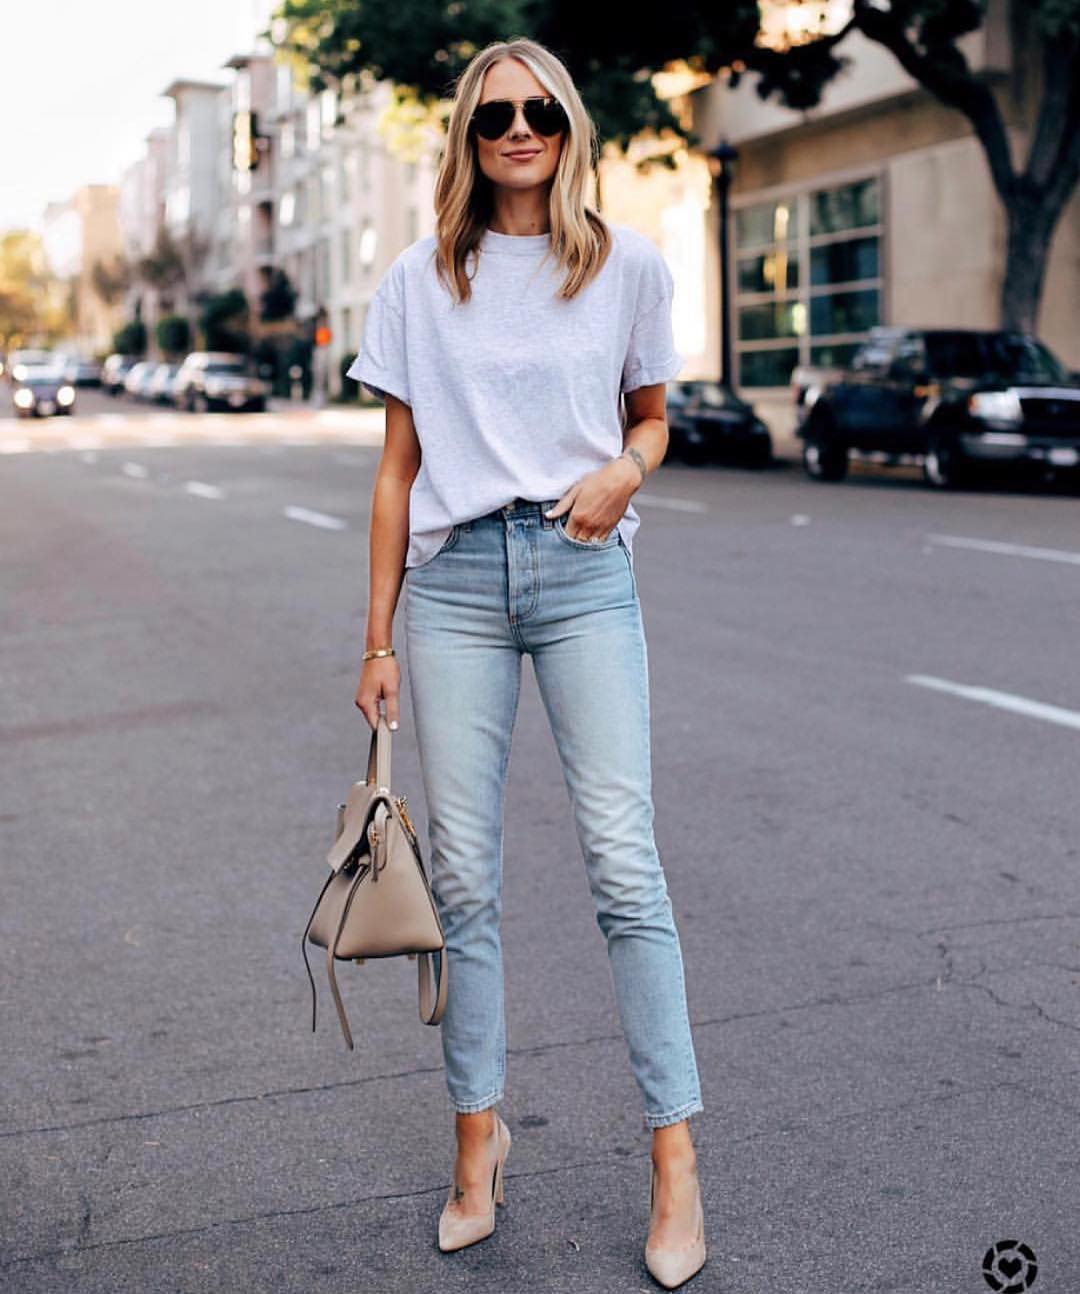 fashion_dailystyle_4_4_2019_1_48_25_17.jpg